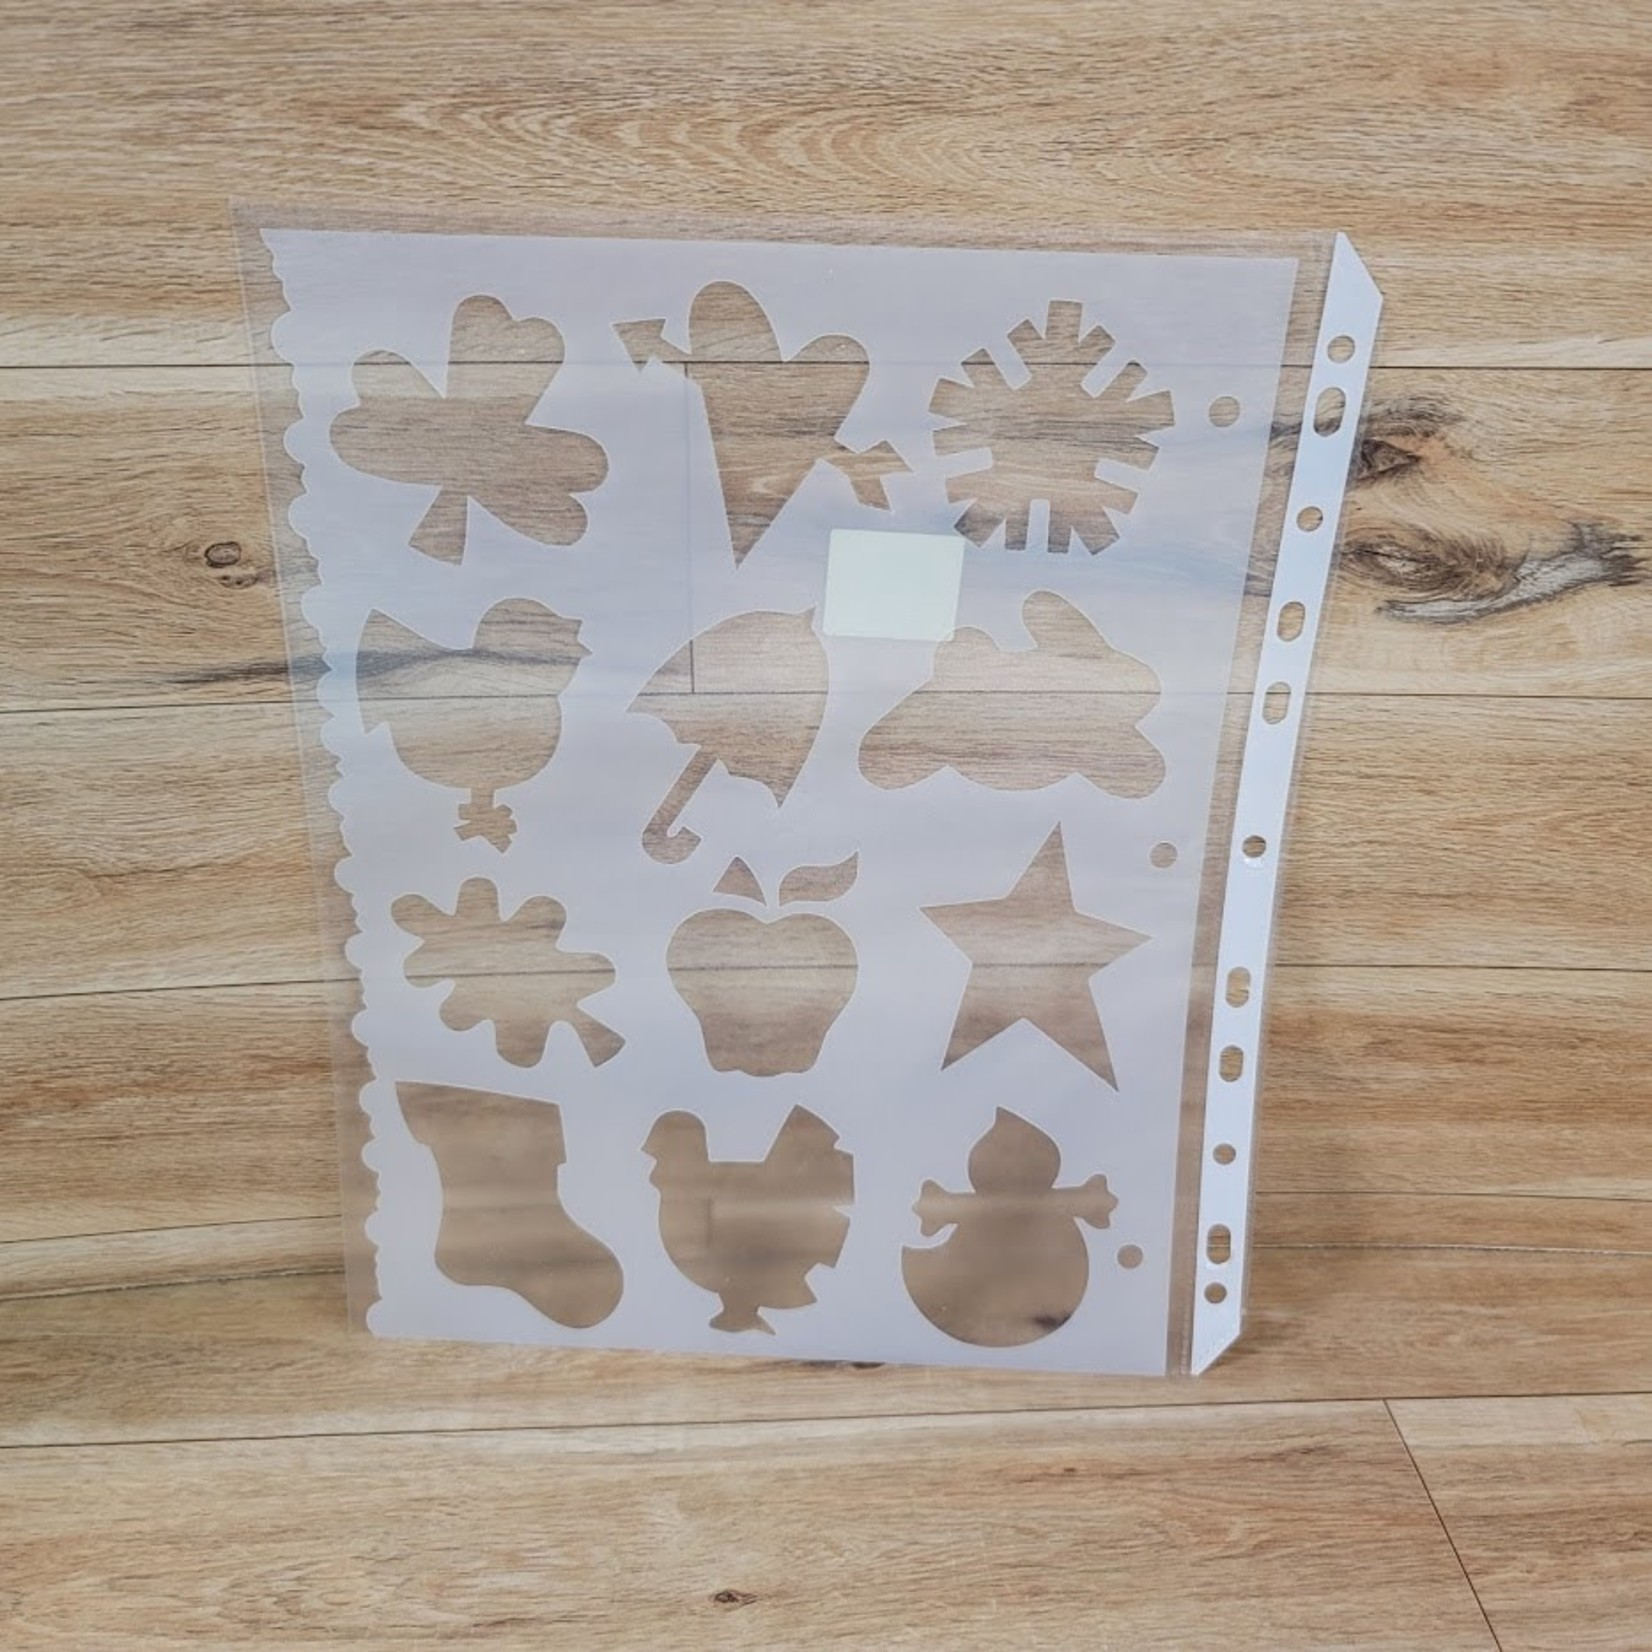 Stencils - Holiday Shapes